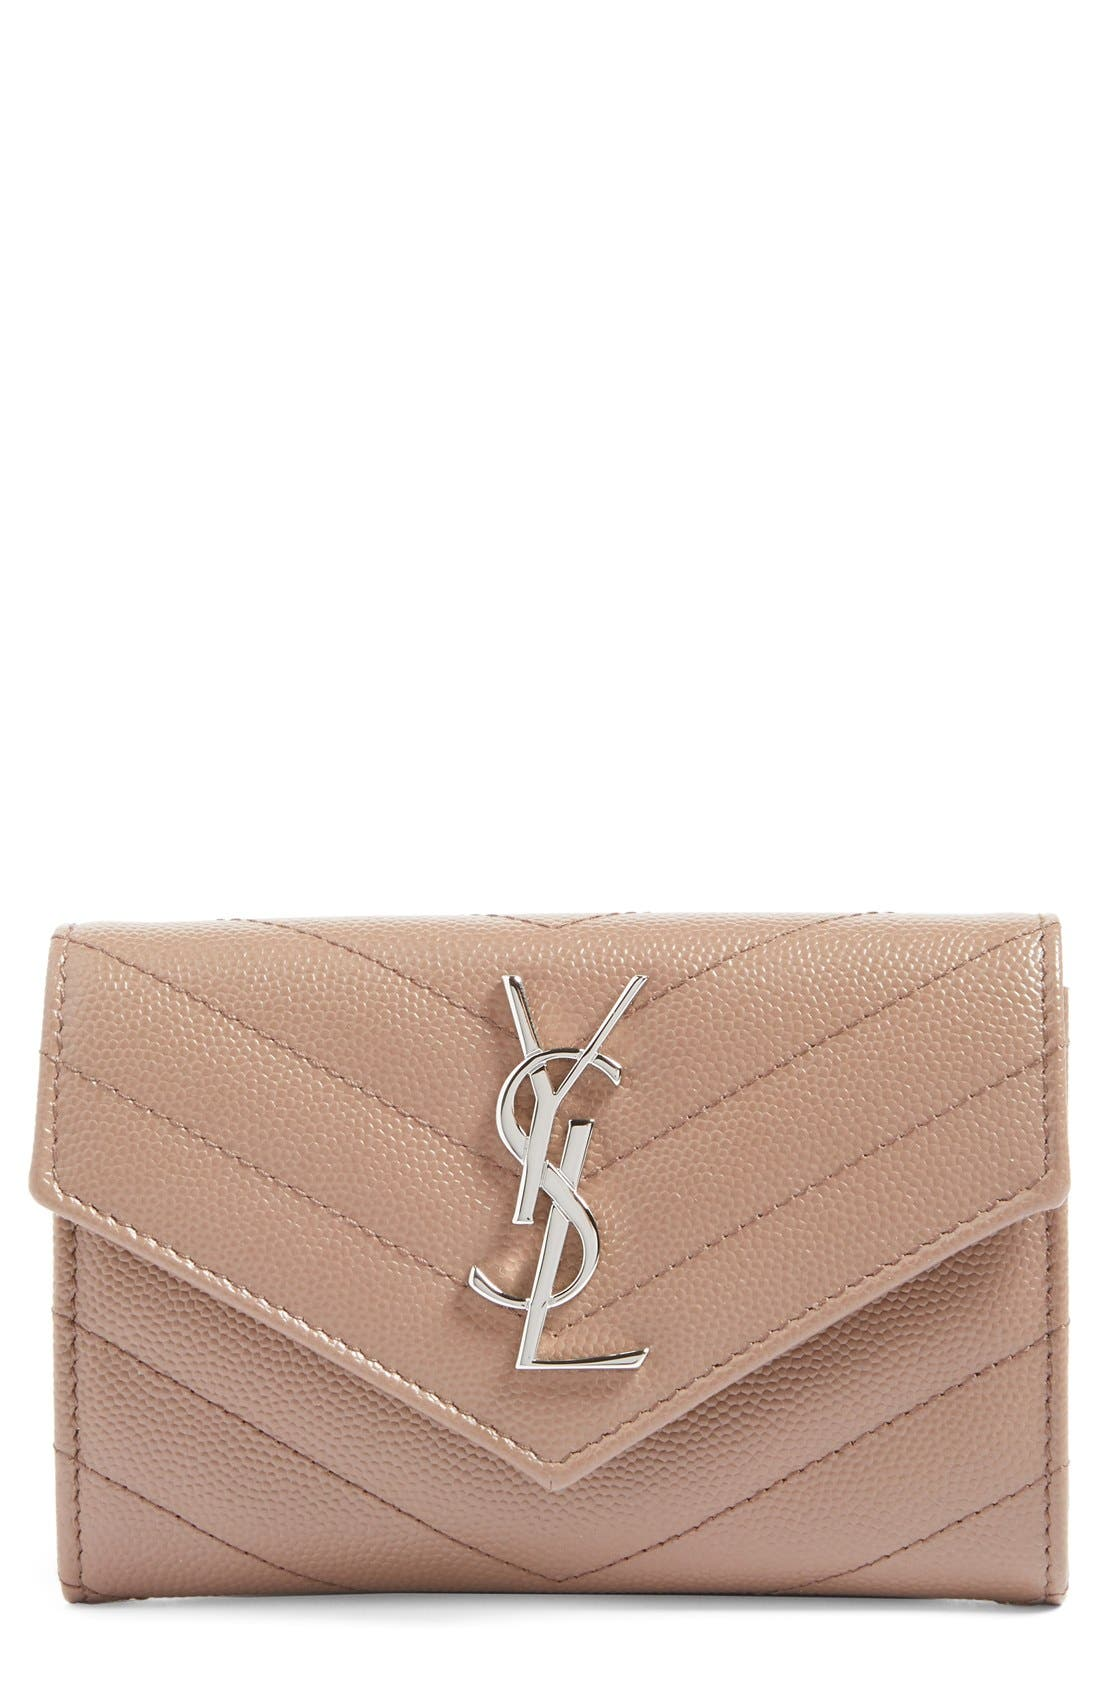 'Small Monogram' Leather French Wallet,                             Main thumbnail 7, color,